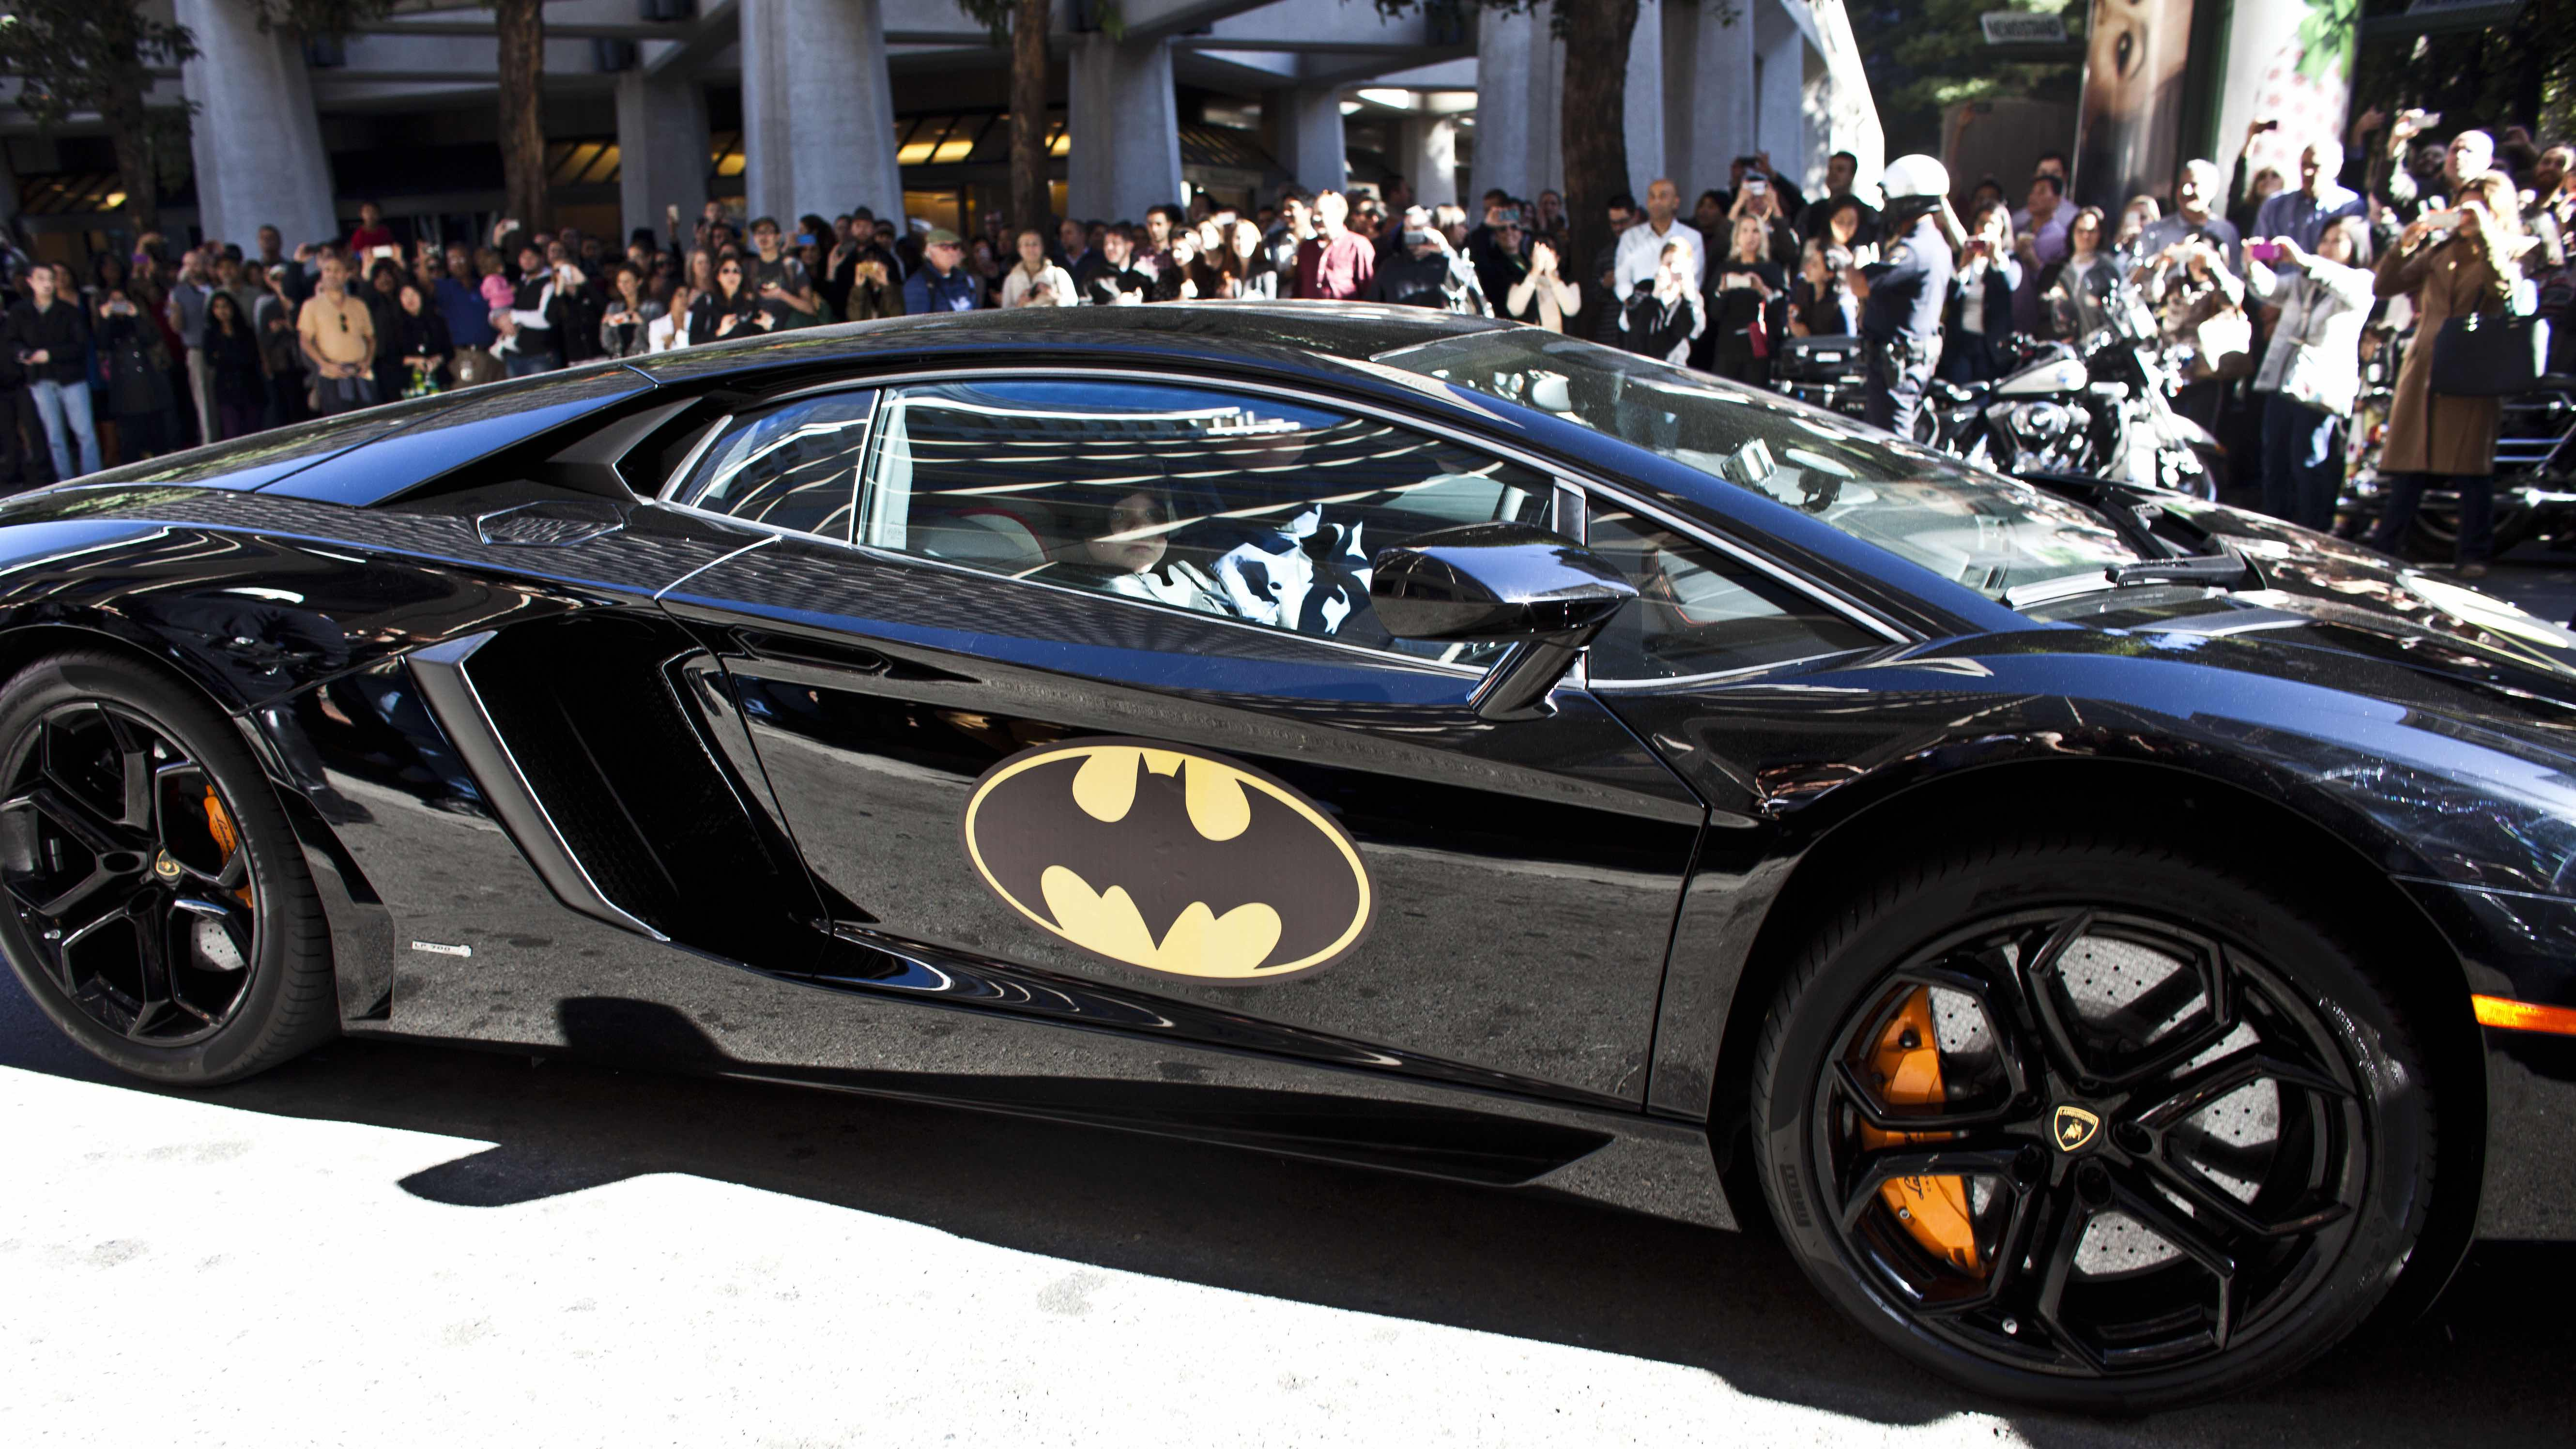 Batmobile driving past fans with car insurance